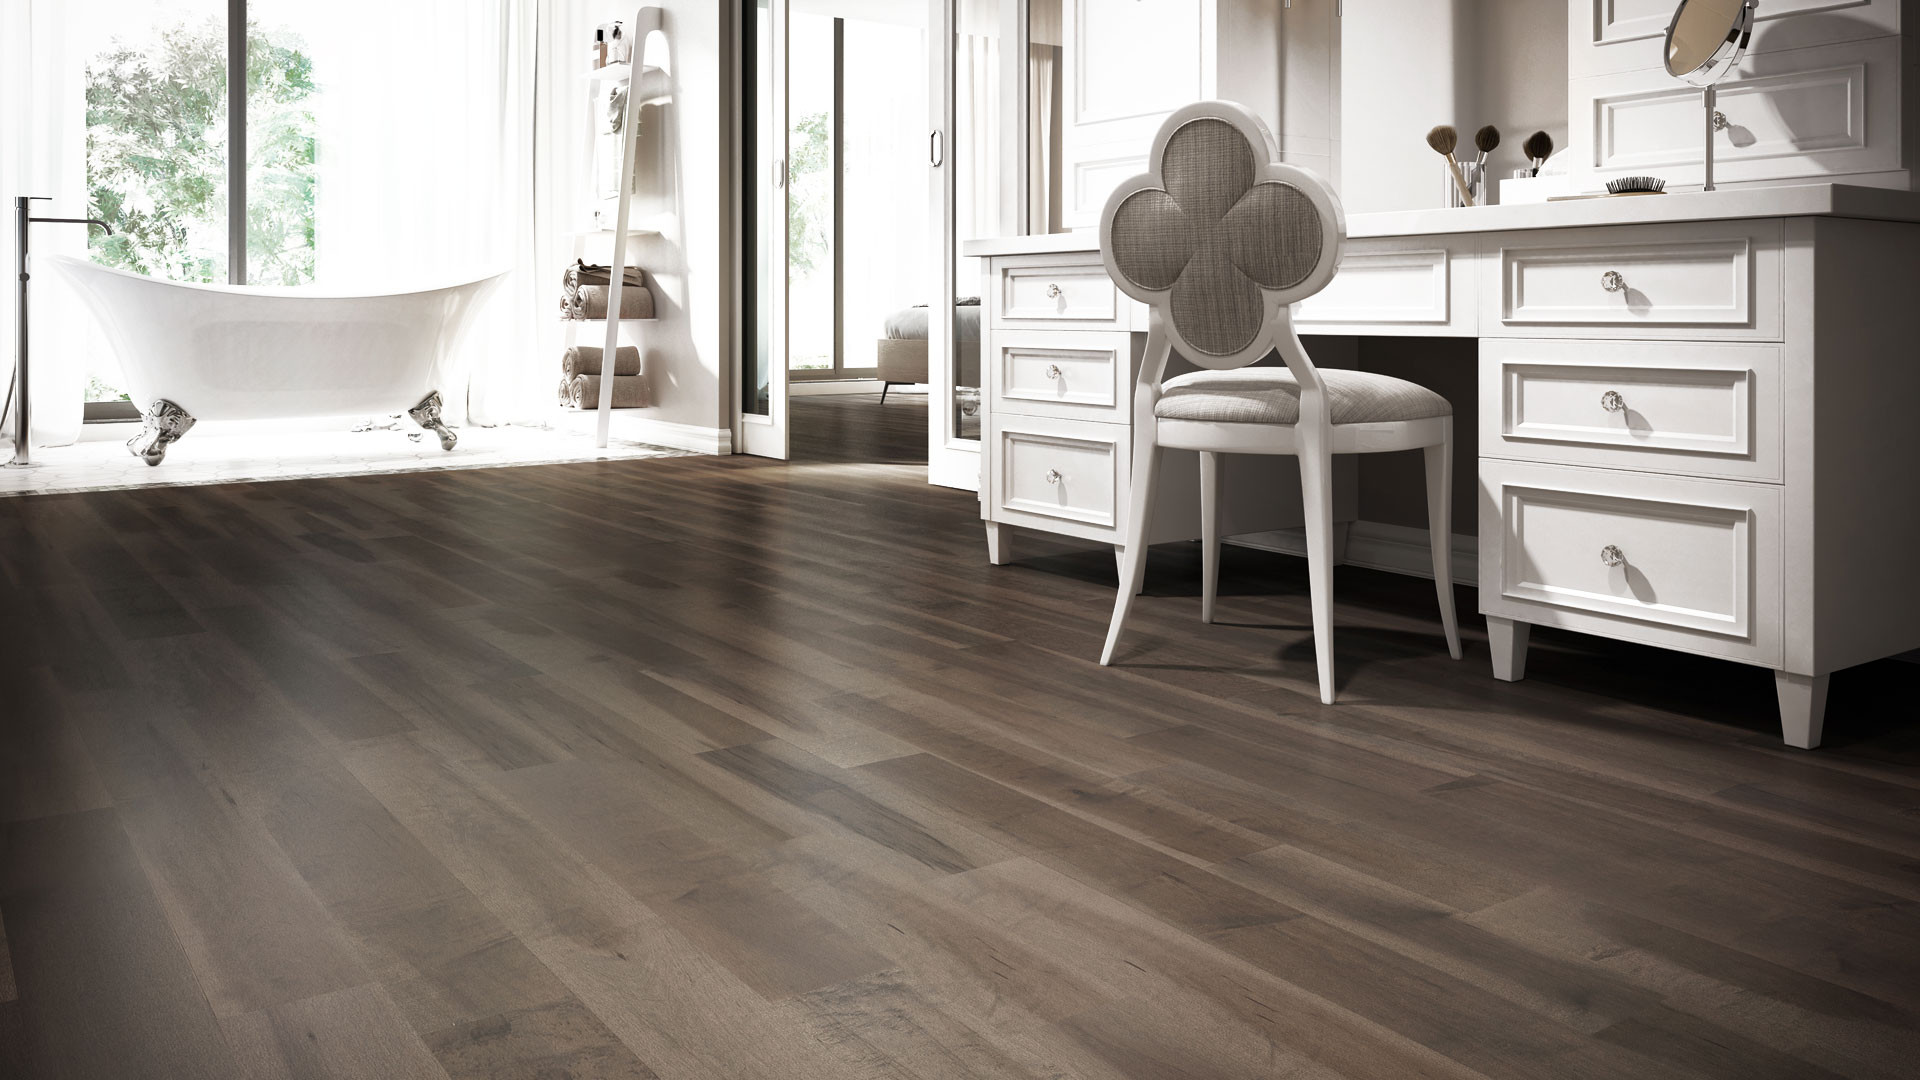 most popular hardwood floor colors 2016 of 4 latest hardwood flooring trends lauzon flooring within top 4 hardwood flooring trends